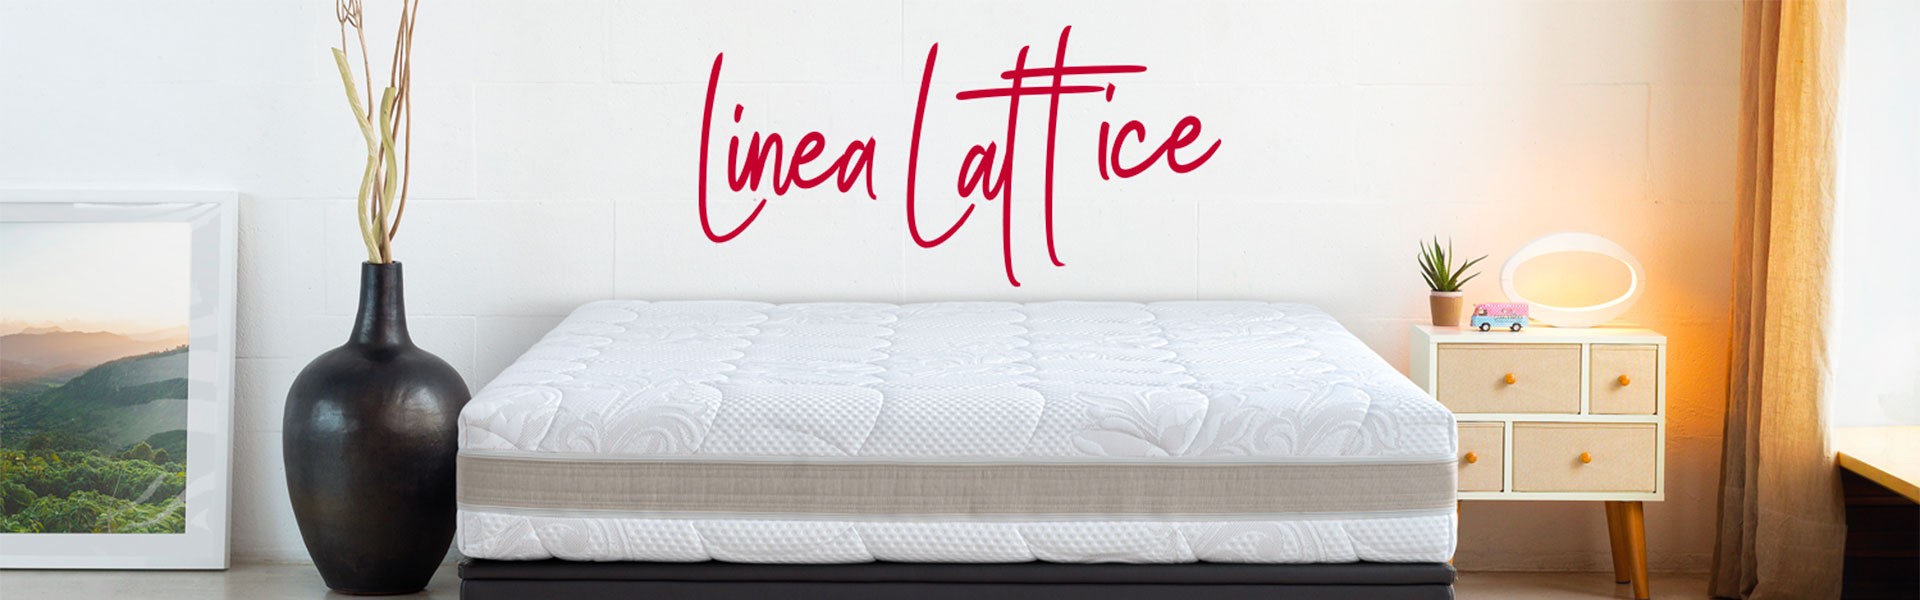 permaflex-milano-linea-lattice